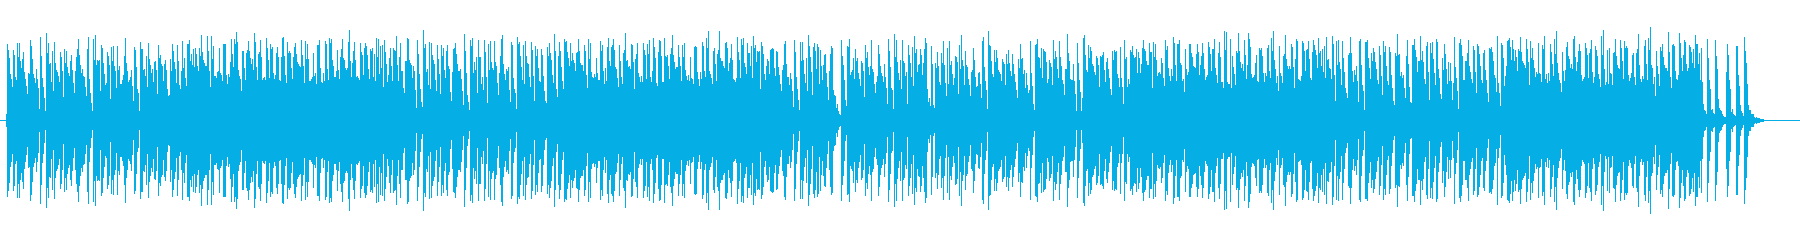 Unique jazzy pops's reproduced waveform